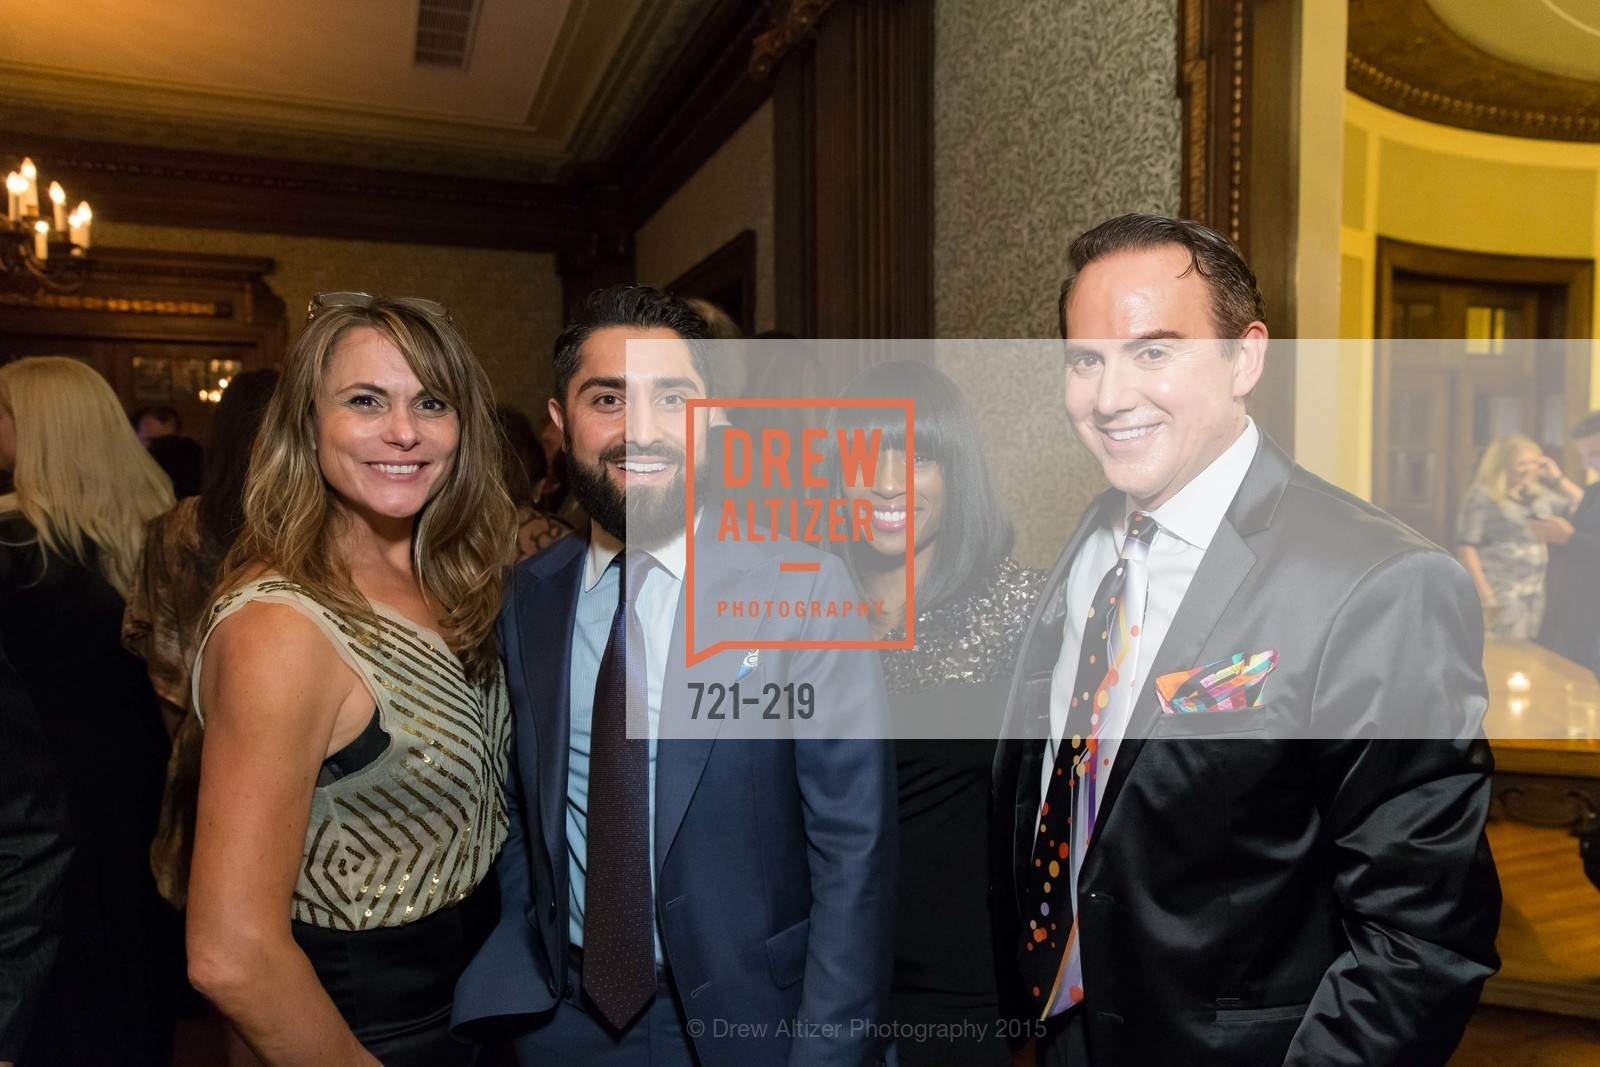 Teresa Rodriguez, Roh Habibi, Pernella Sommerville, Joel Goodrich, Champagne Reception & Screening of Million Dollar Listing San Francisco, University Club. 800 Powell St, August 5th, 2015,Drew Altizer, Drew Altizer Photography, full-service agency, private events, San Francisco photographer, photographer california